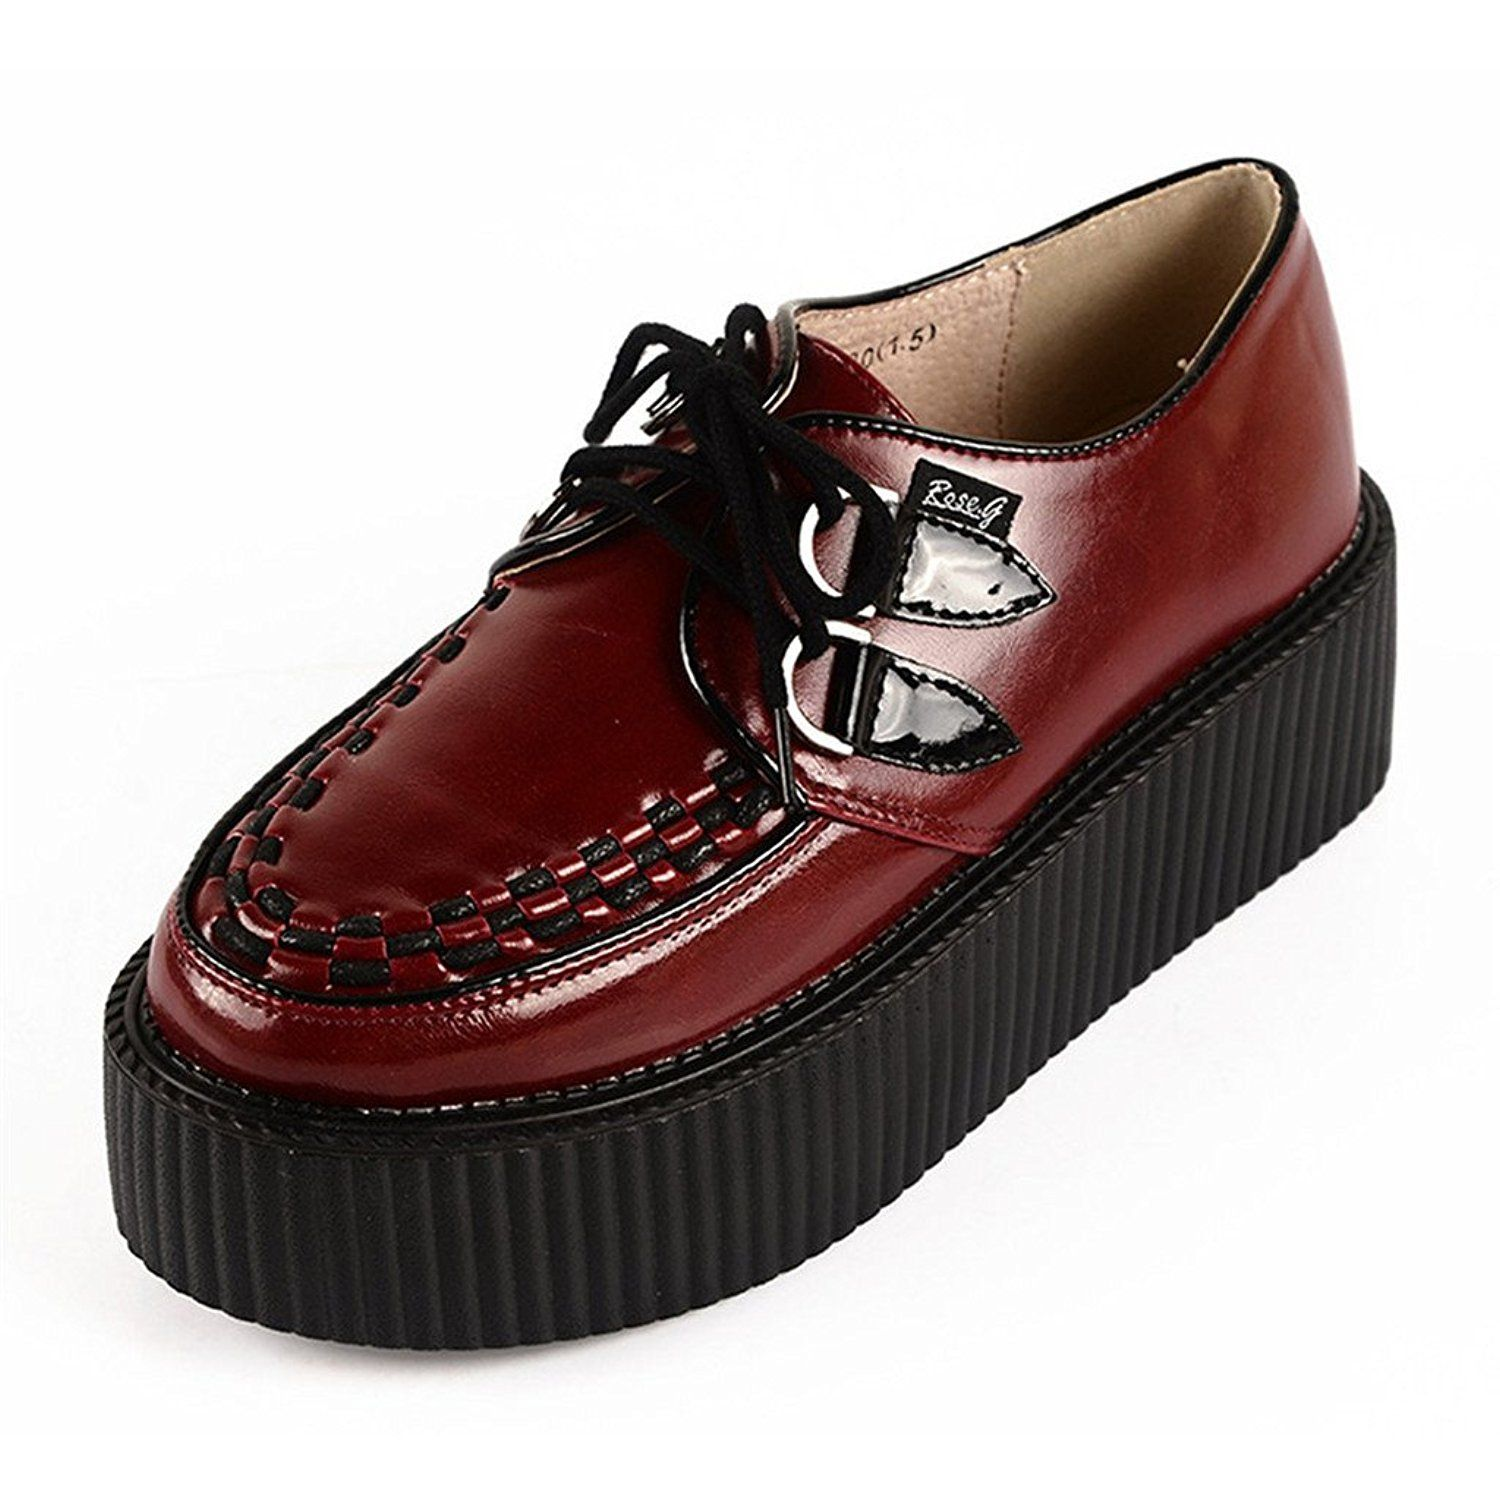 Women Leather Lace Up Platform Oxfords Flats Punk Goth Creepers